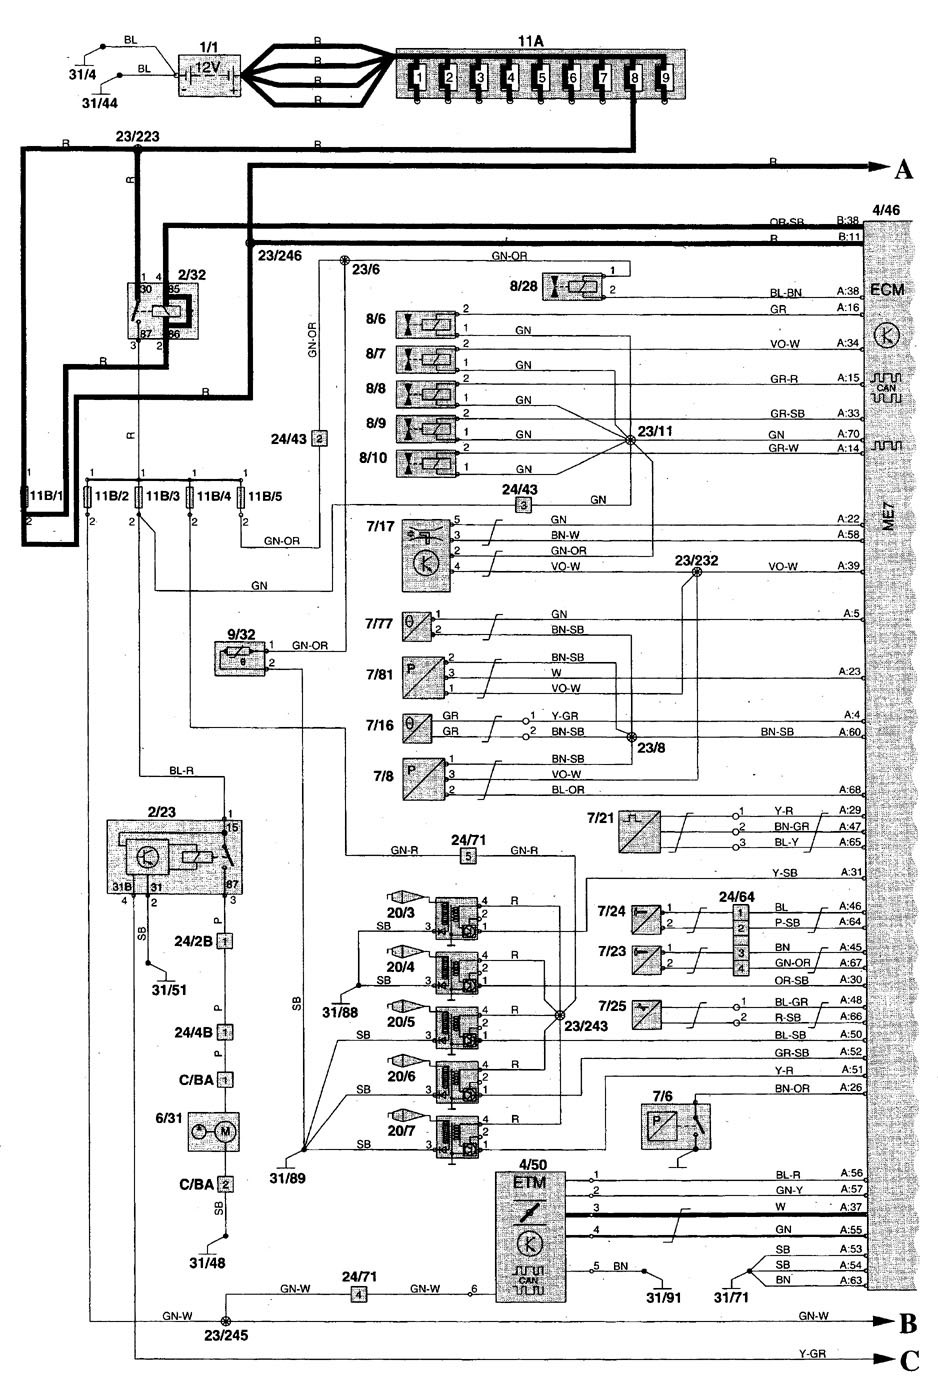 Outstanding ct90 wiring diagram ensign electrical and wiring marvellous 1981 honda c70 wiring diagram ideas best image diagram asfbconference2016 Gallery